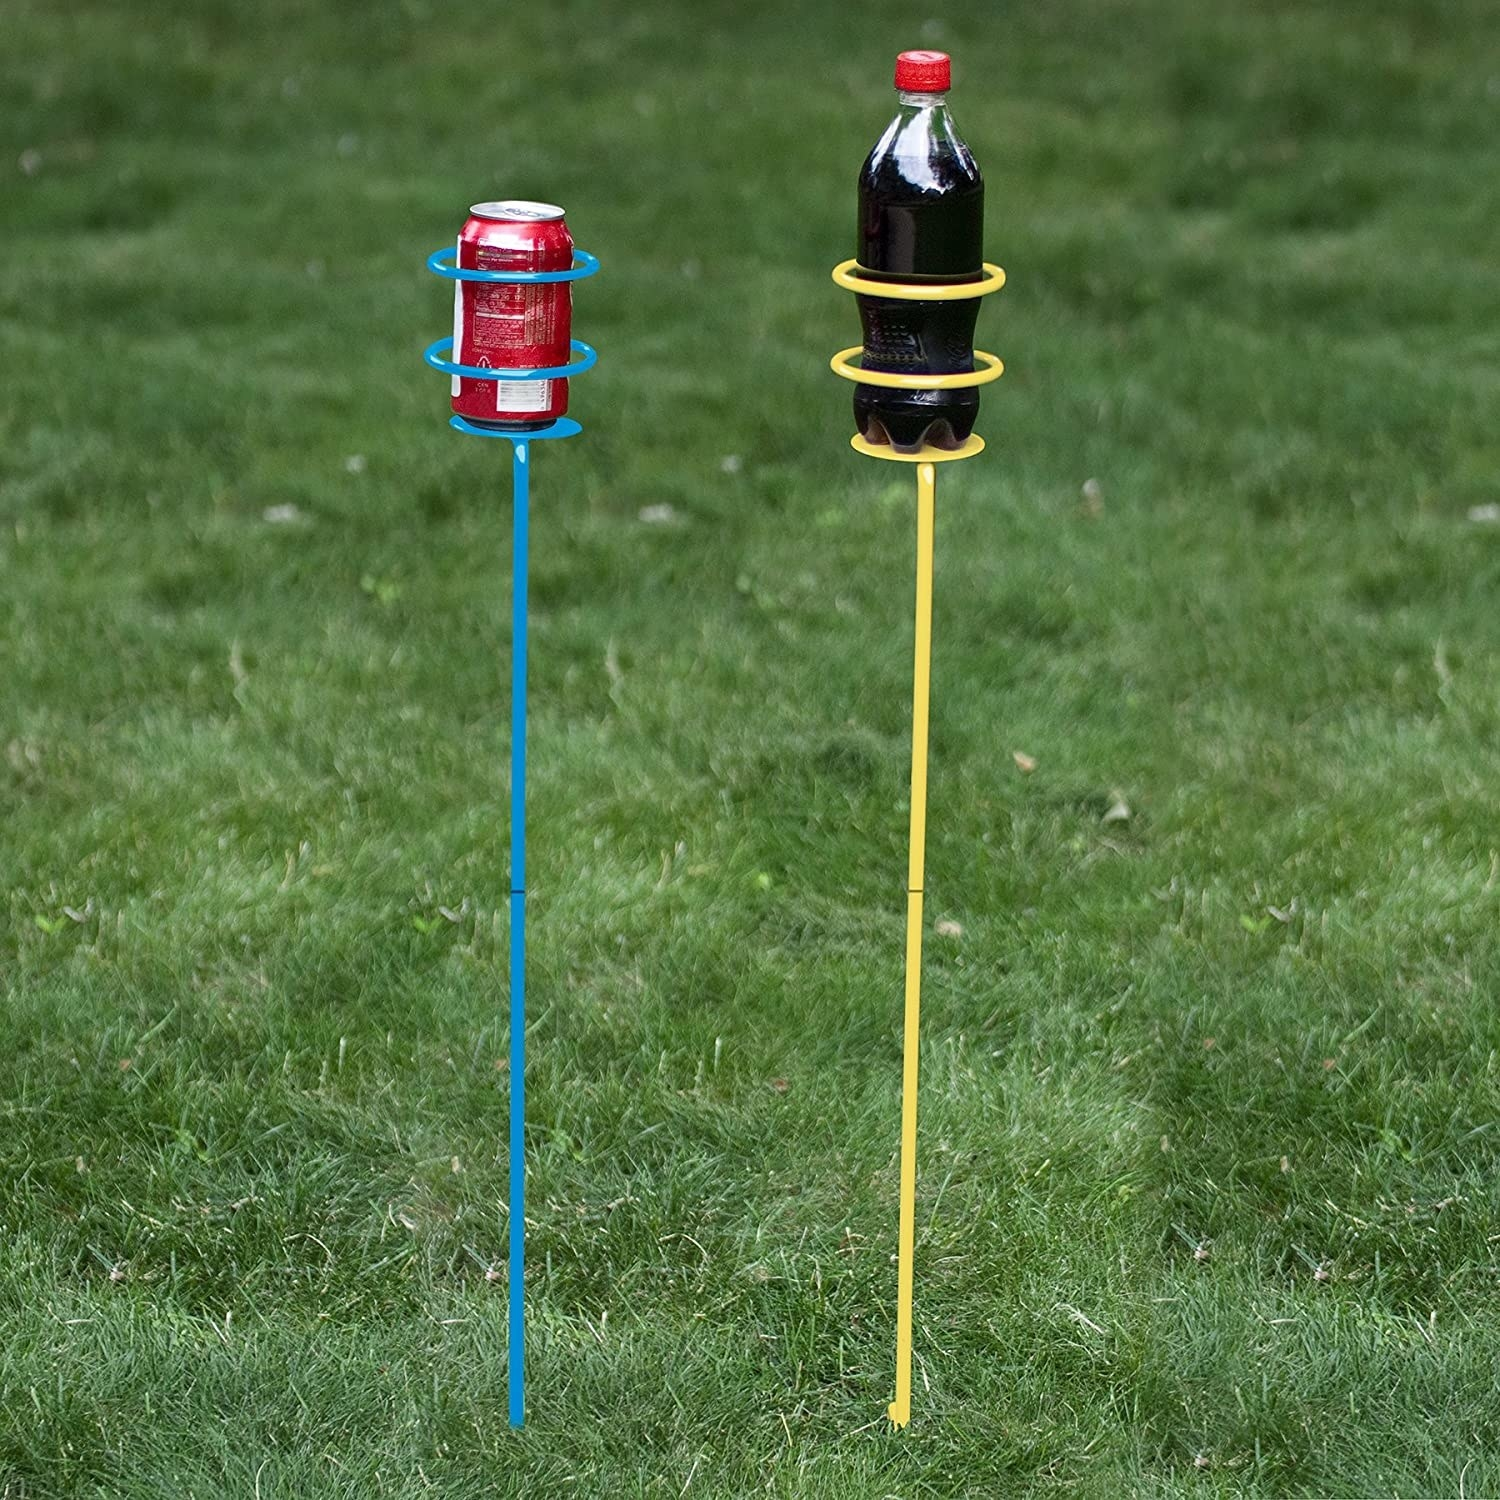 The drink stakes sticking out of grass and holding a can and bottle of soda